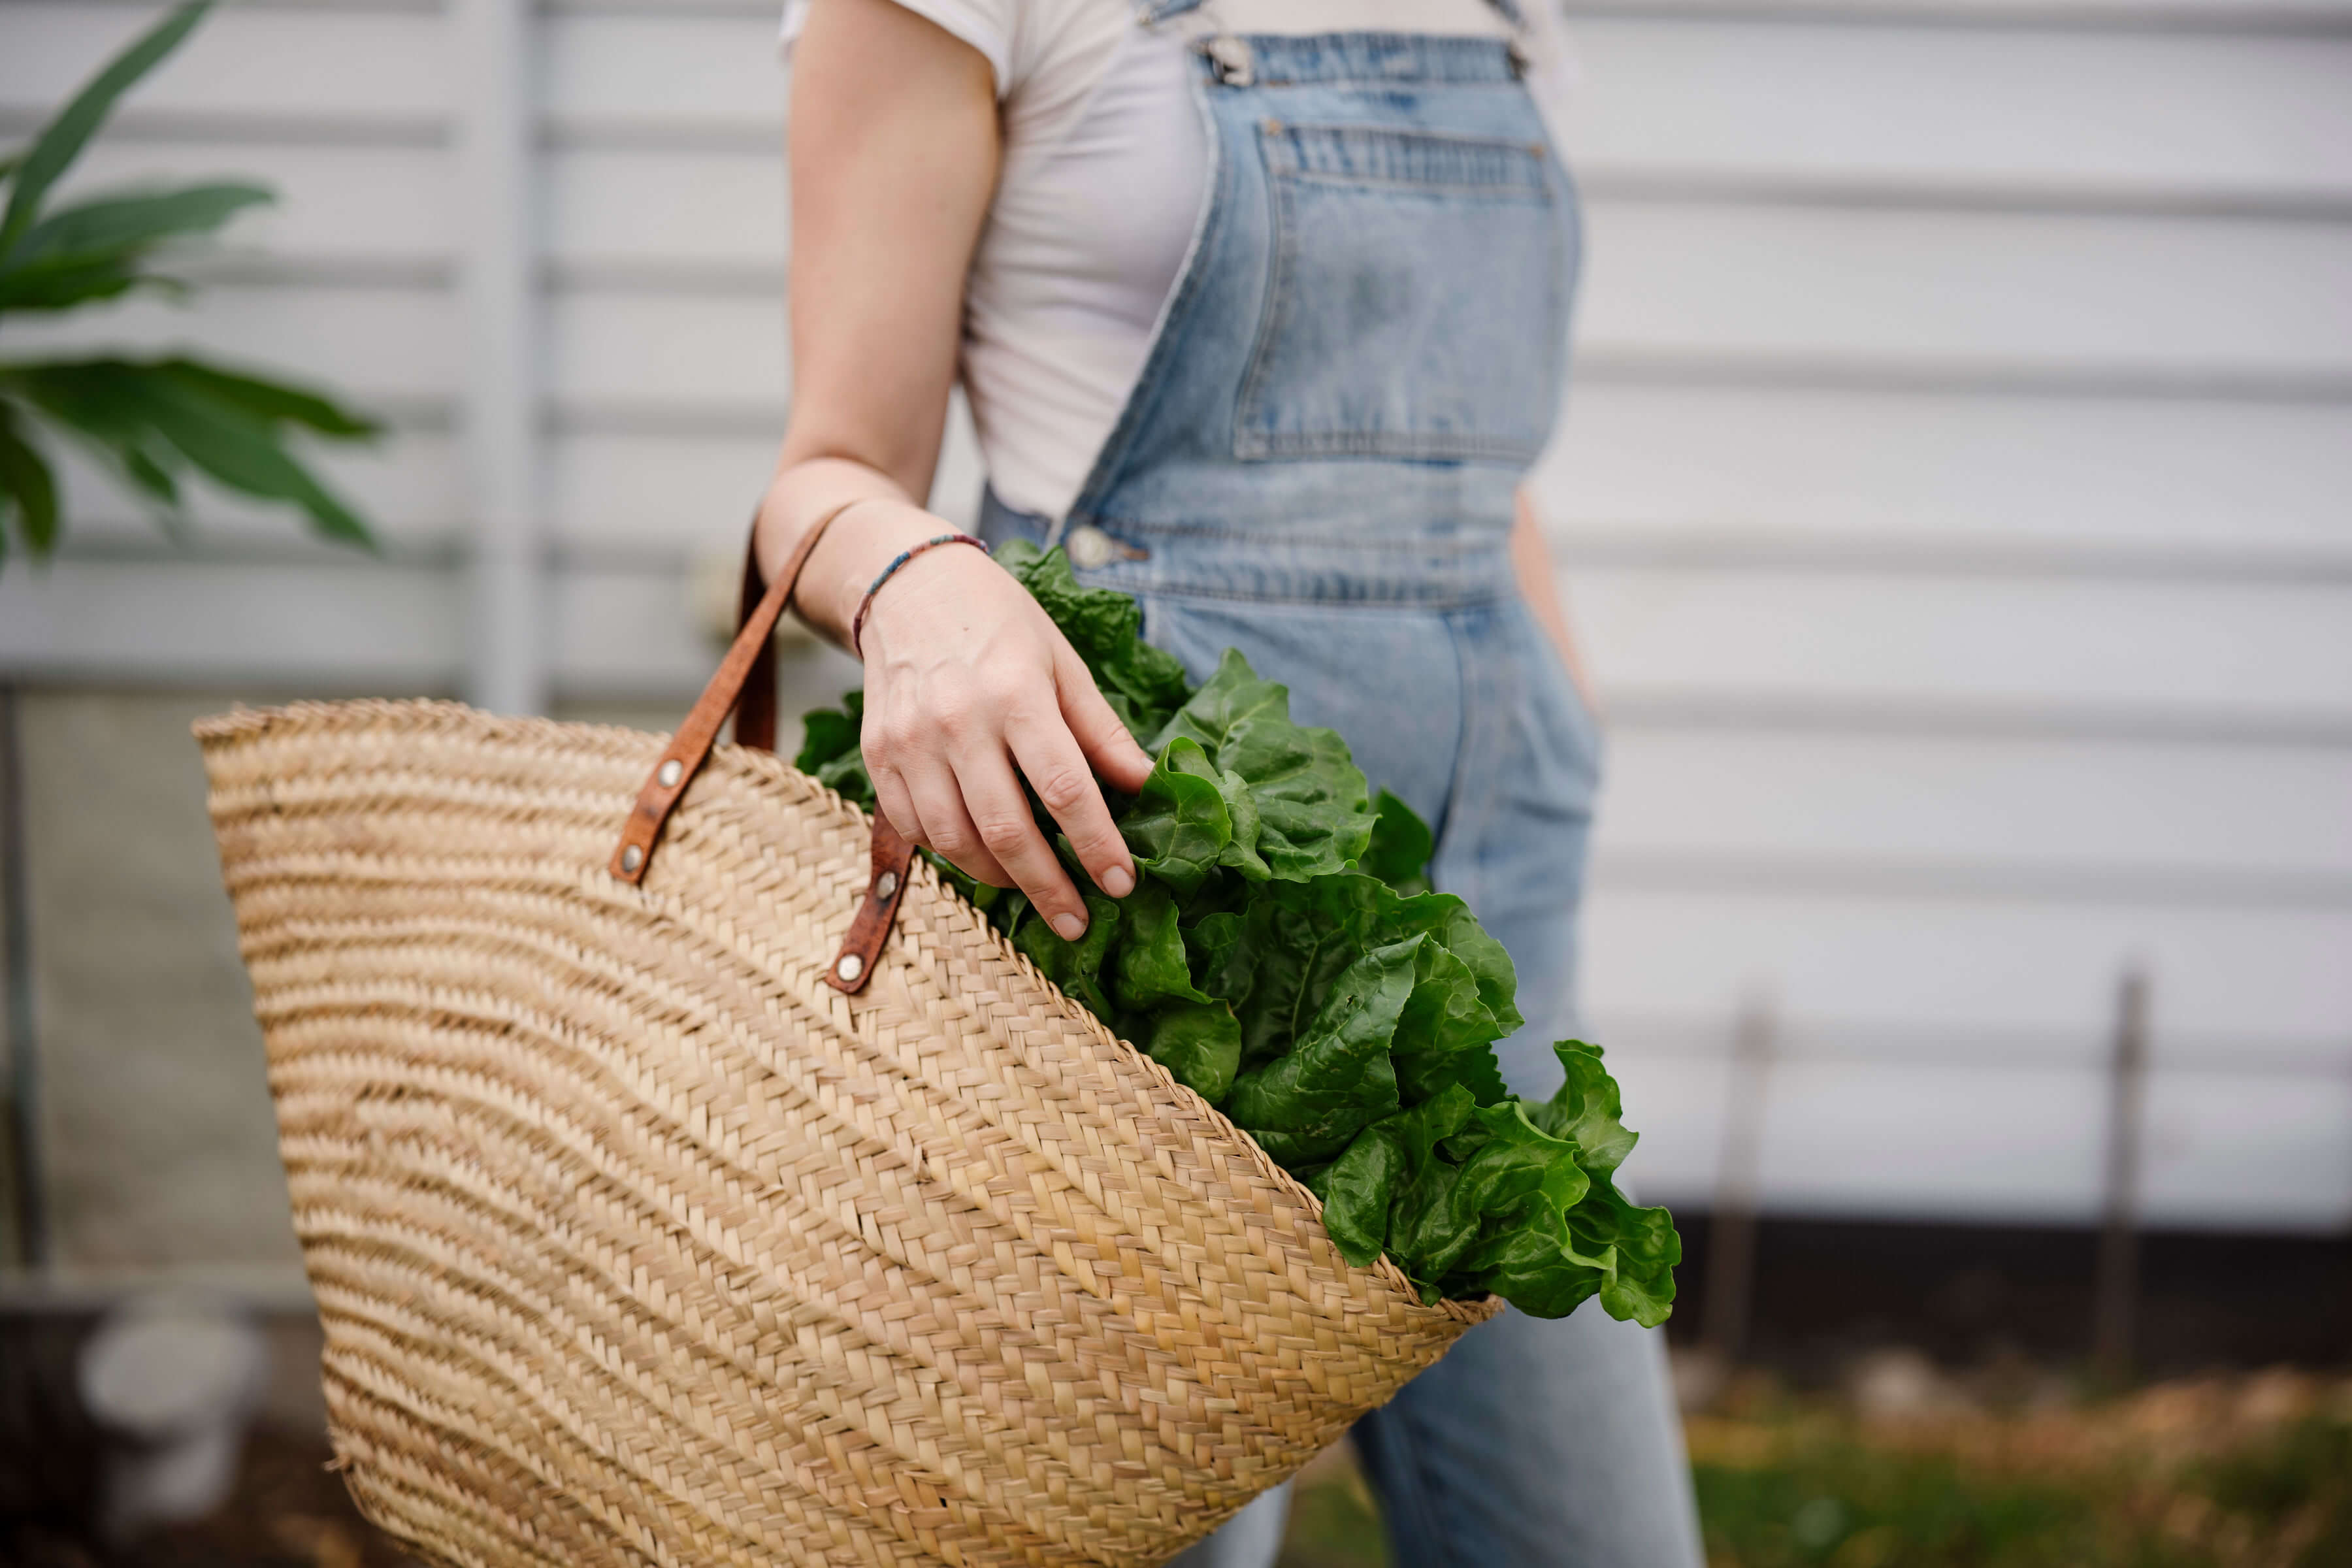 Sarah Bell, founder of Stackwood concept store Australia holding a basket bag with salad leaves in for La Basketry on the shelf